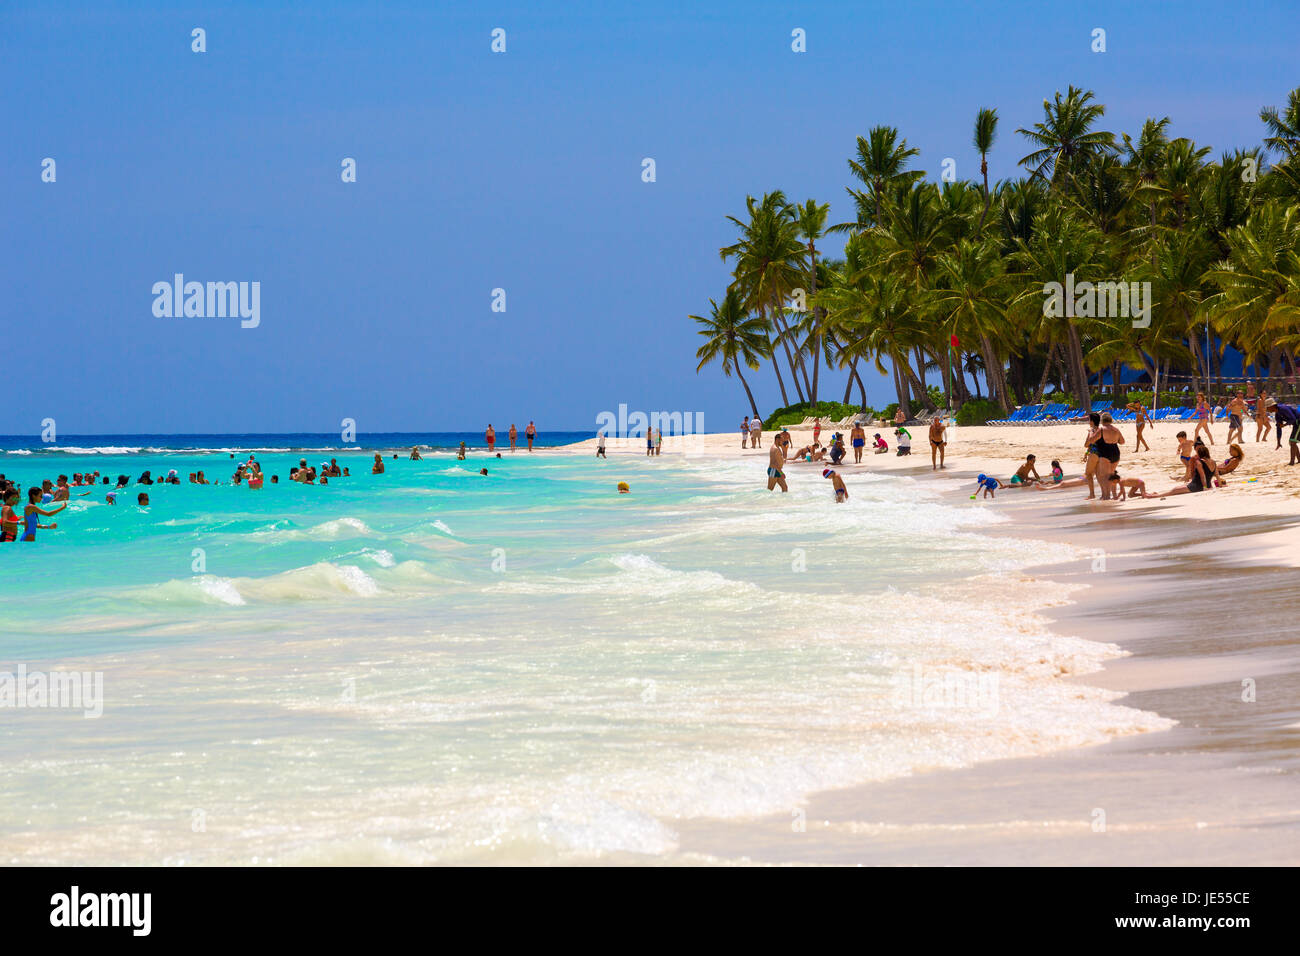 beach of the island Saona with tourists on the hot summer day. - Stock Image